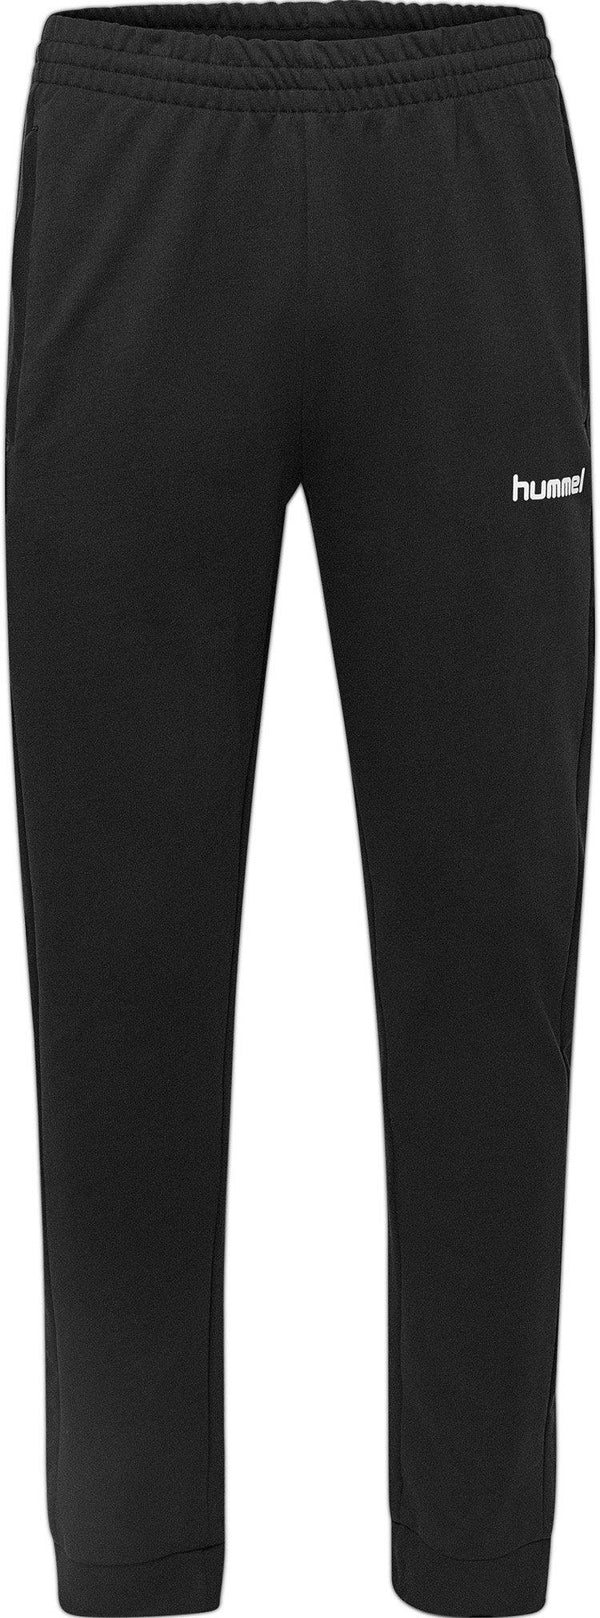 hummel hmlGo Cotton Pants-Soccer Command